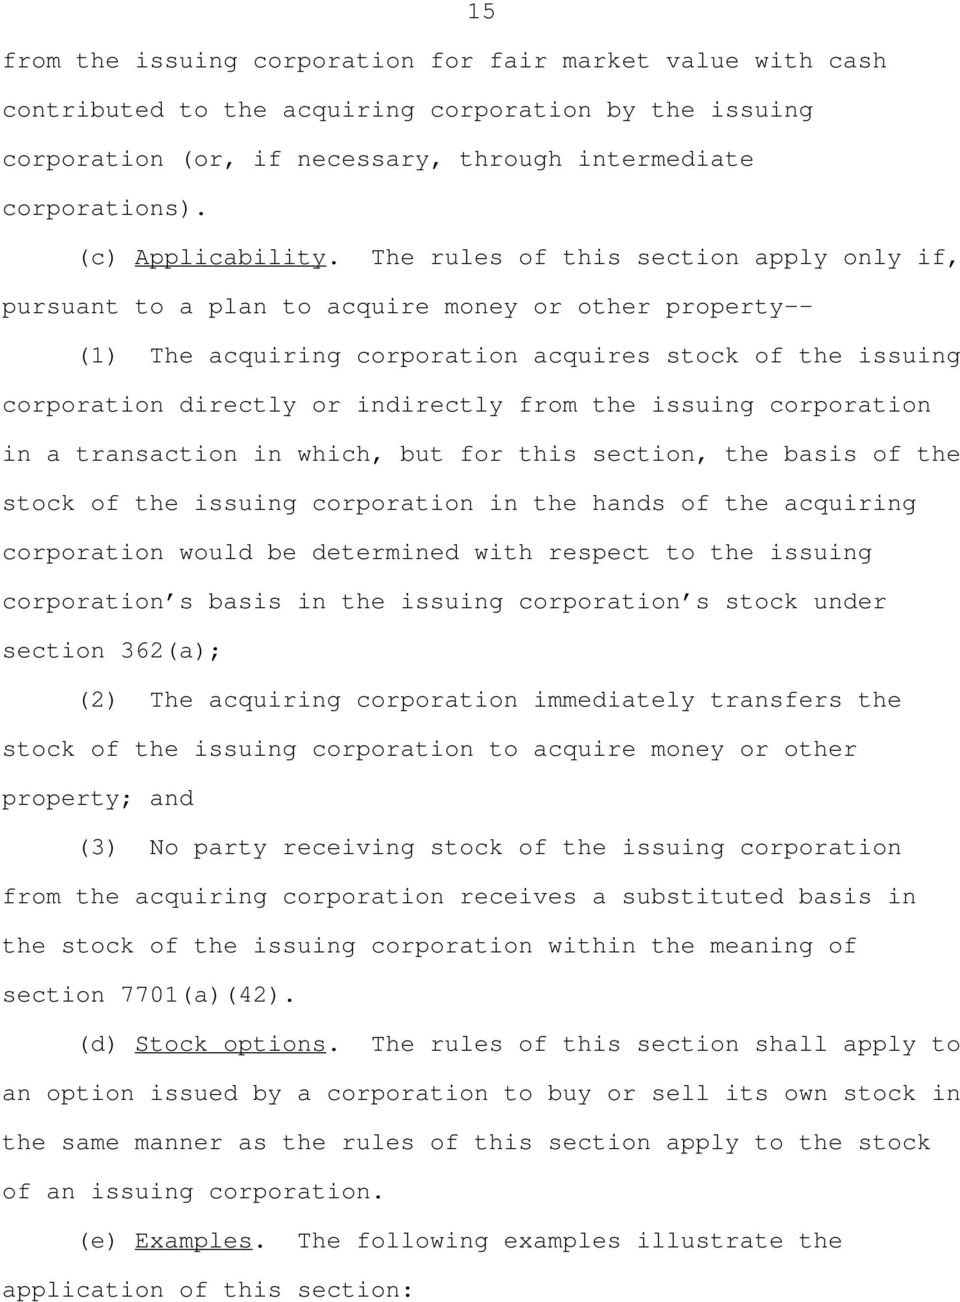 The rules of this section apply only if, pursuant to a plan to acquire money or other property-- (1) The acquiring corporation acquires stock of the issuing corporation directly or indirectly from